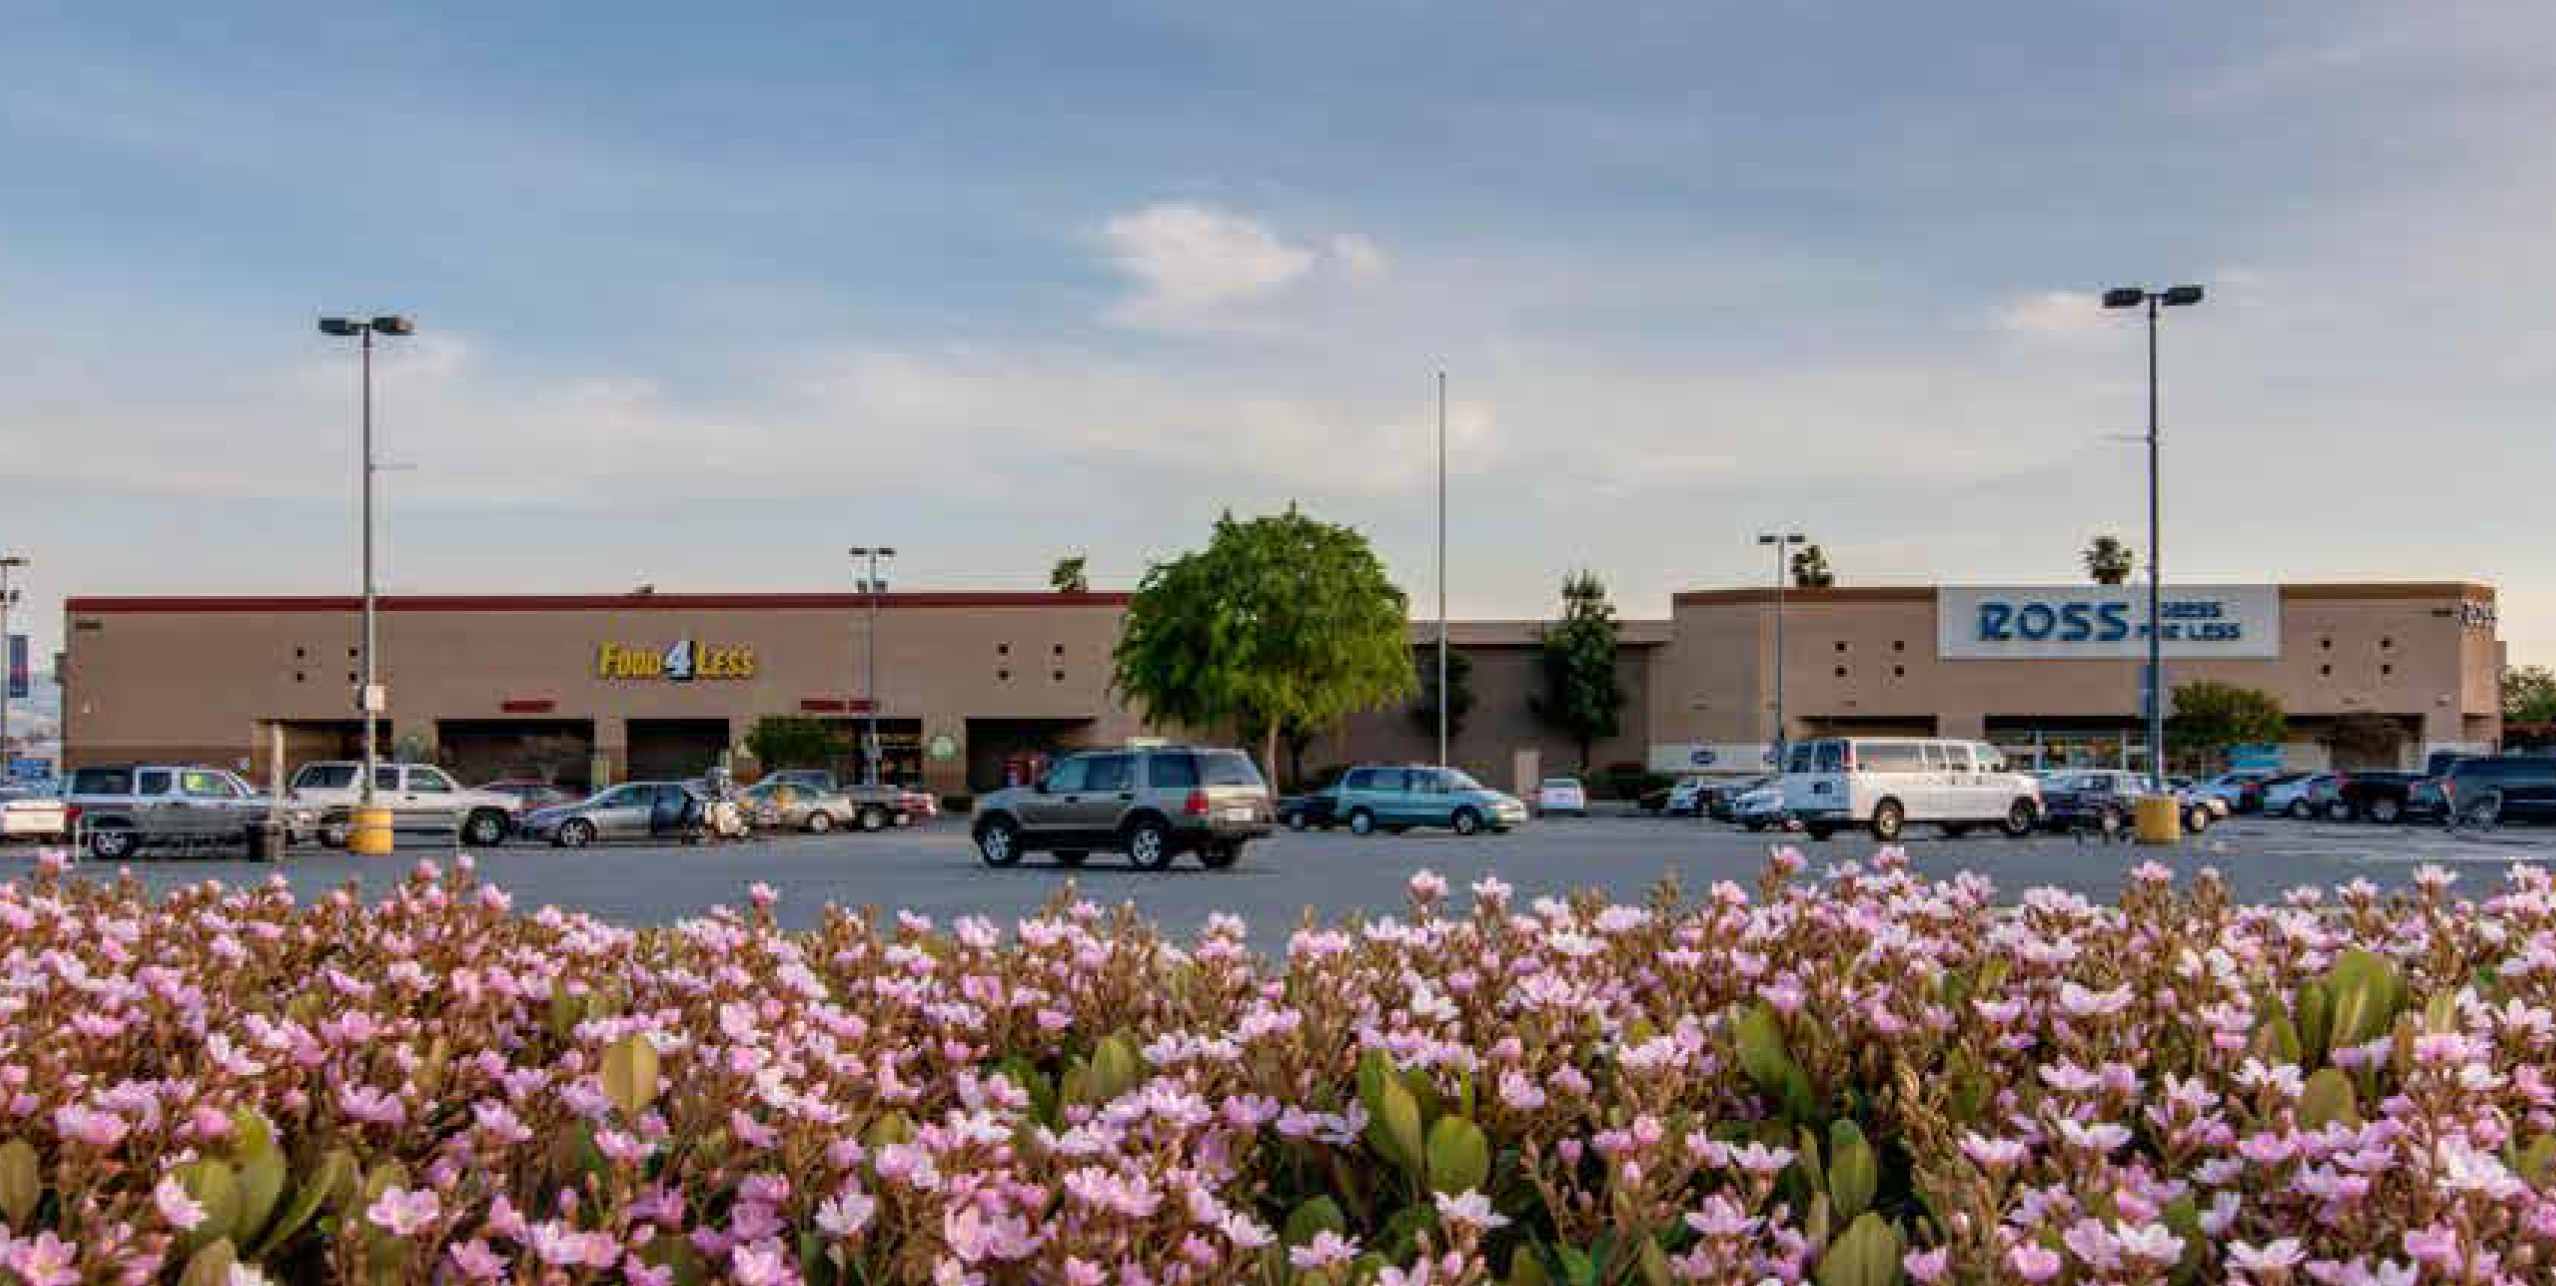 Wood Investments Companies Acquires Two-Tenant Food 4 Less & Ross Retail Center in Inland Empire for Value-Add Opportunity